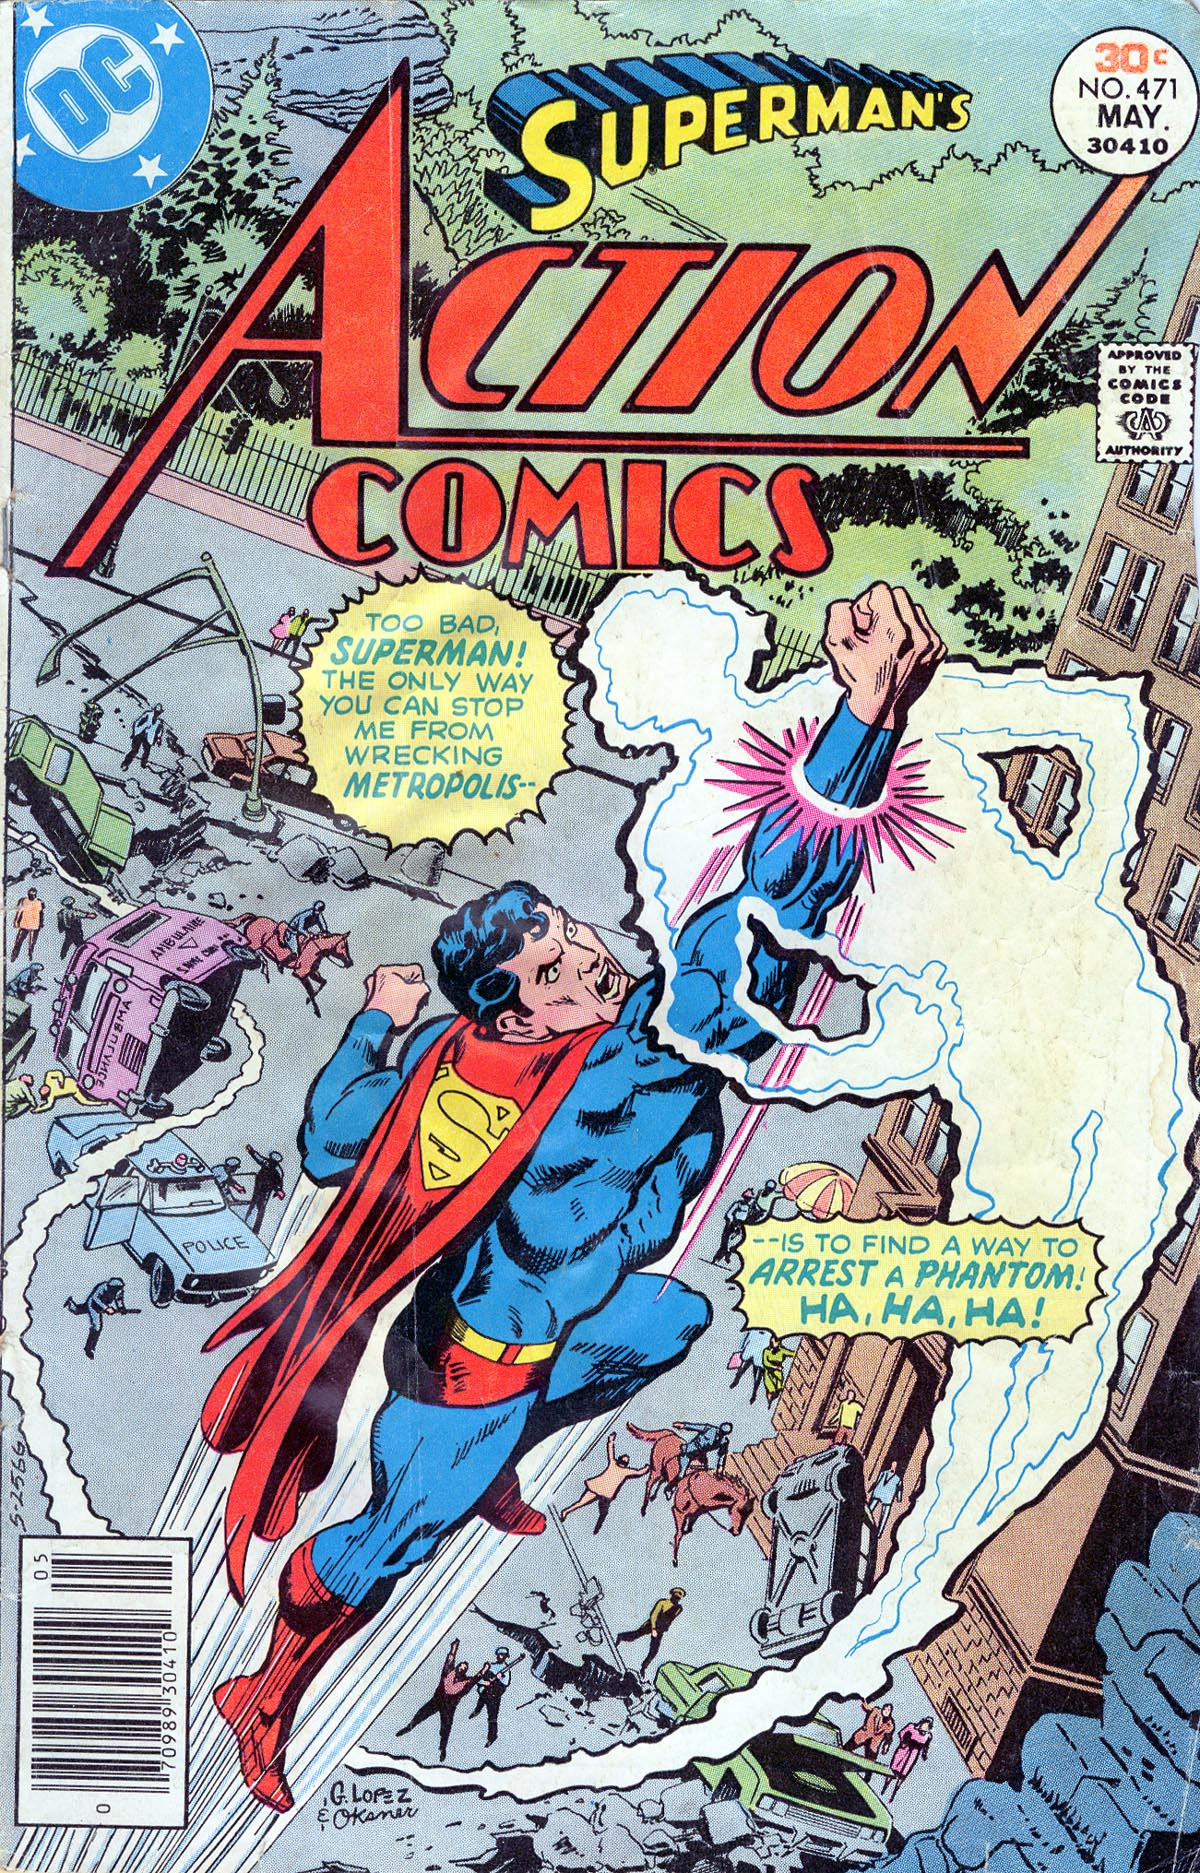 Action Comics (1938) 471 Page 1